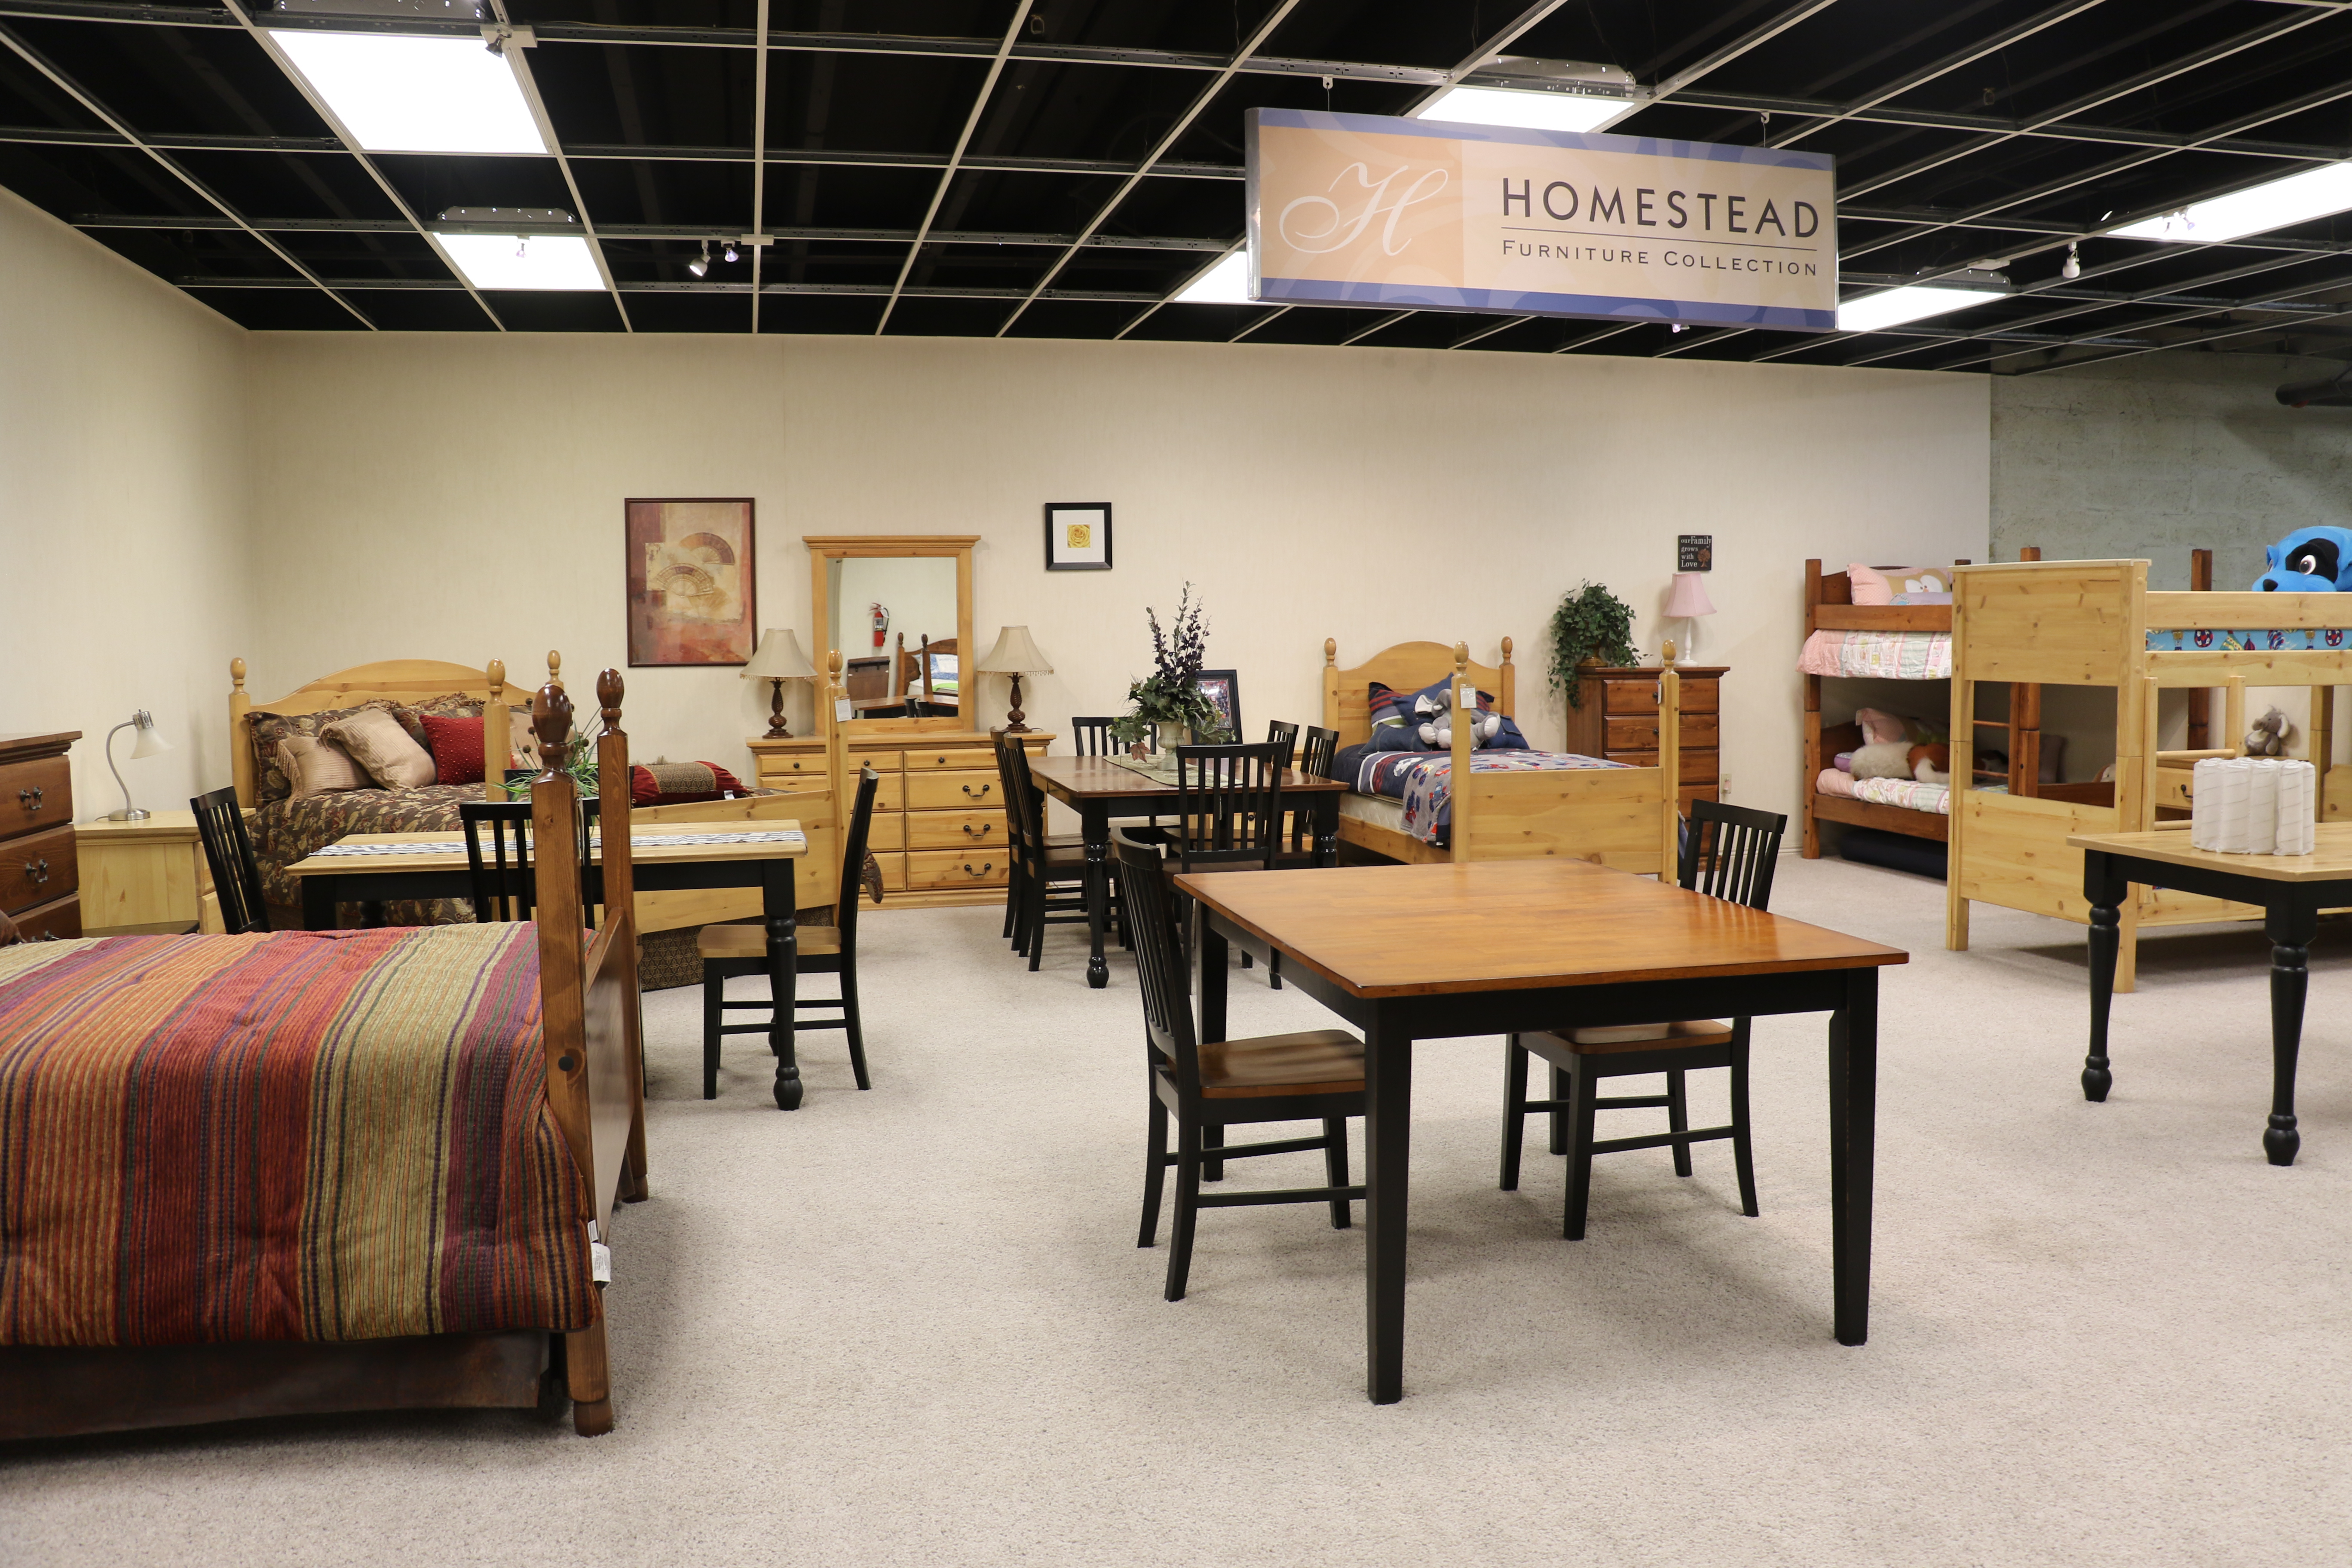 A showroom in the Deseret Manufacturing facility in Salt Lake City, Utah, displays furniture available through the Deseret Industries.